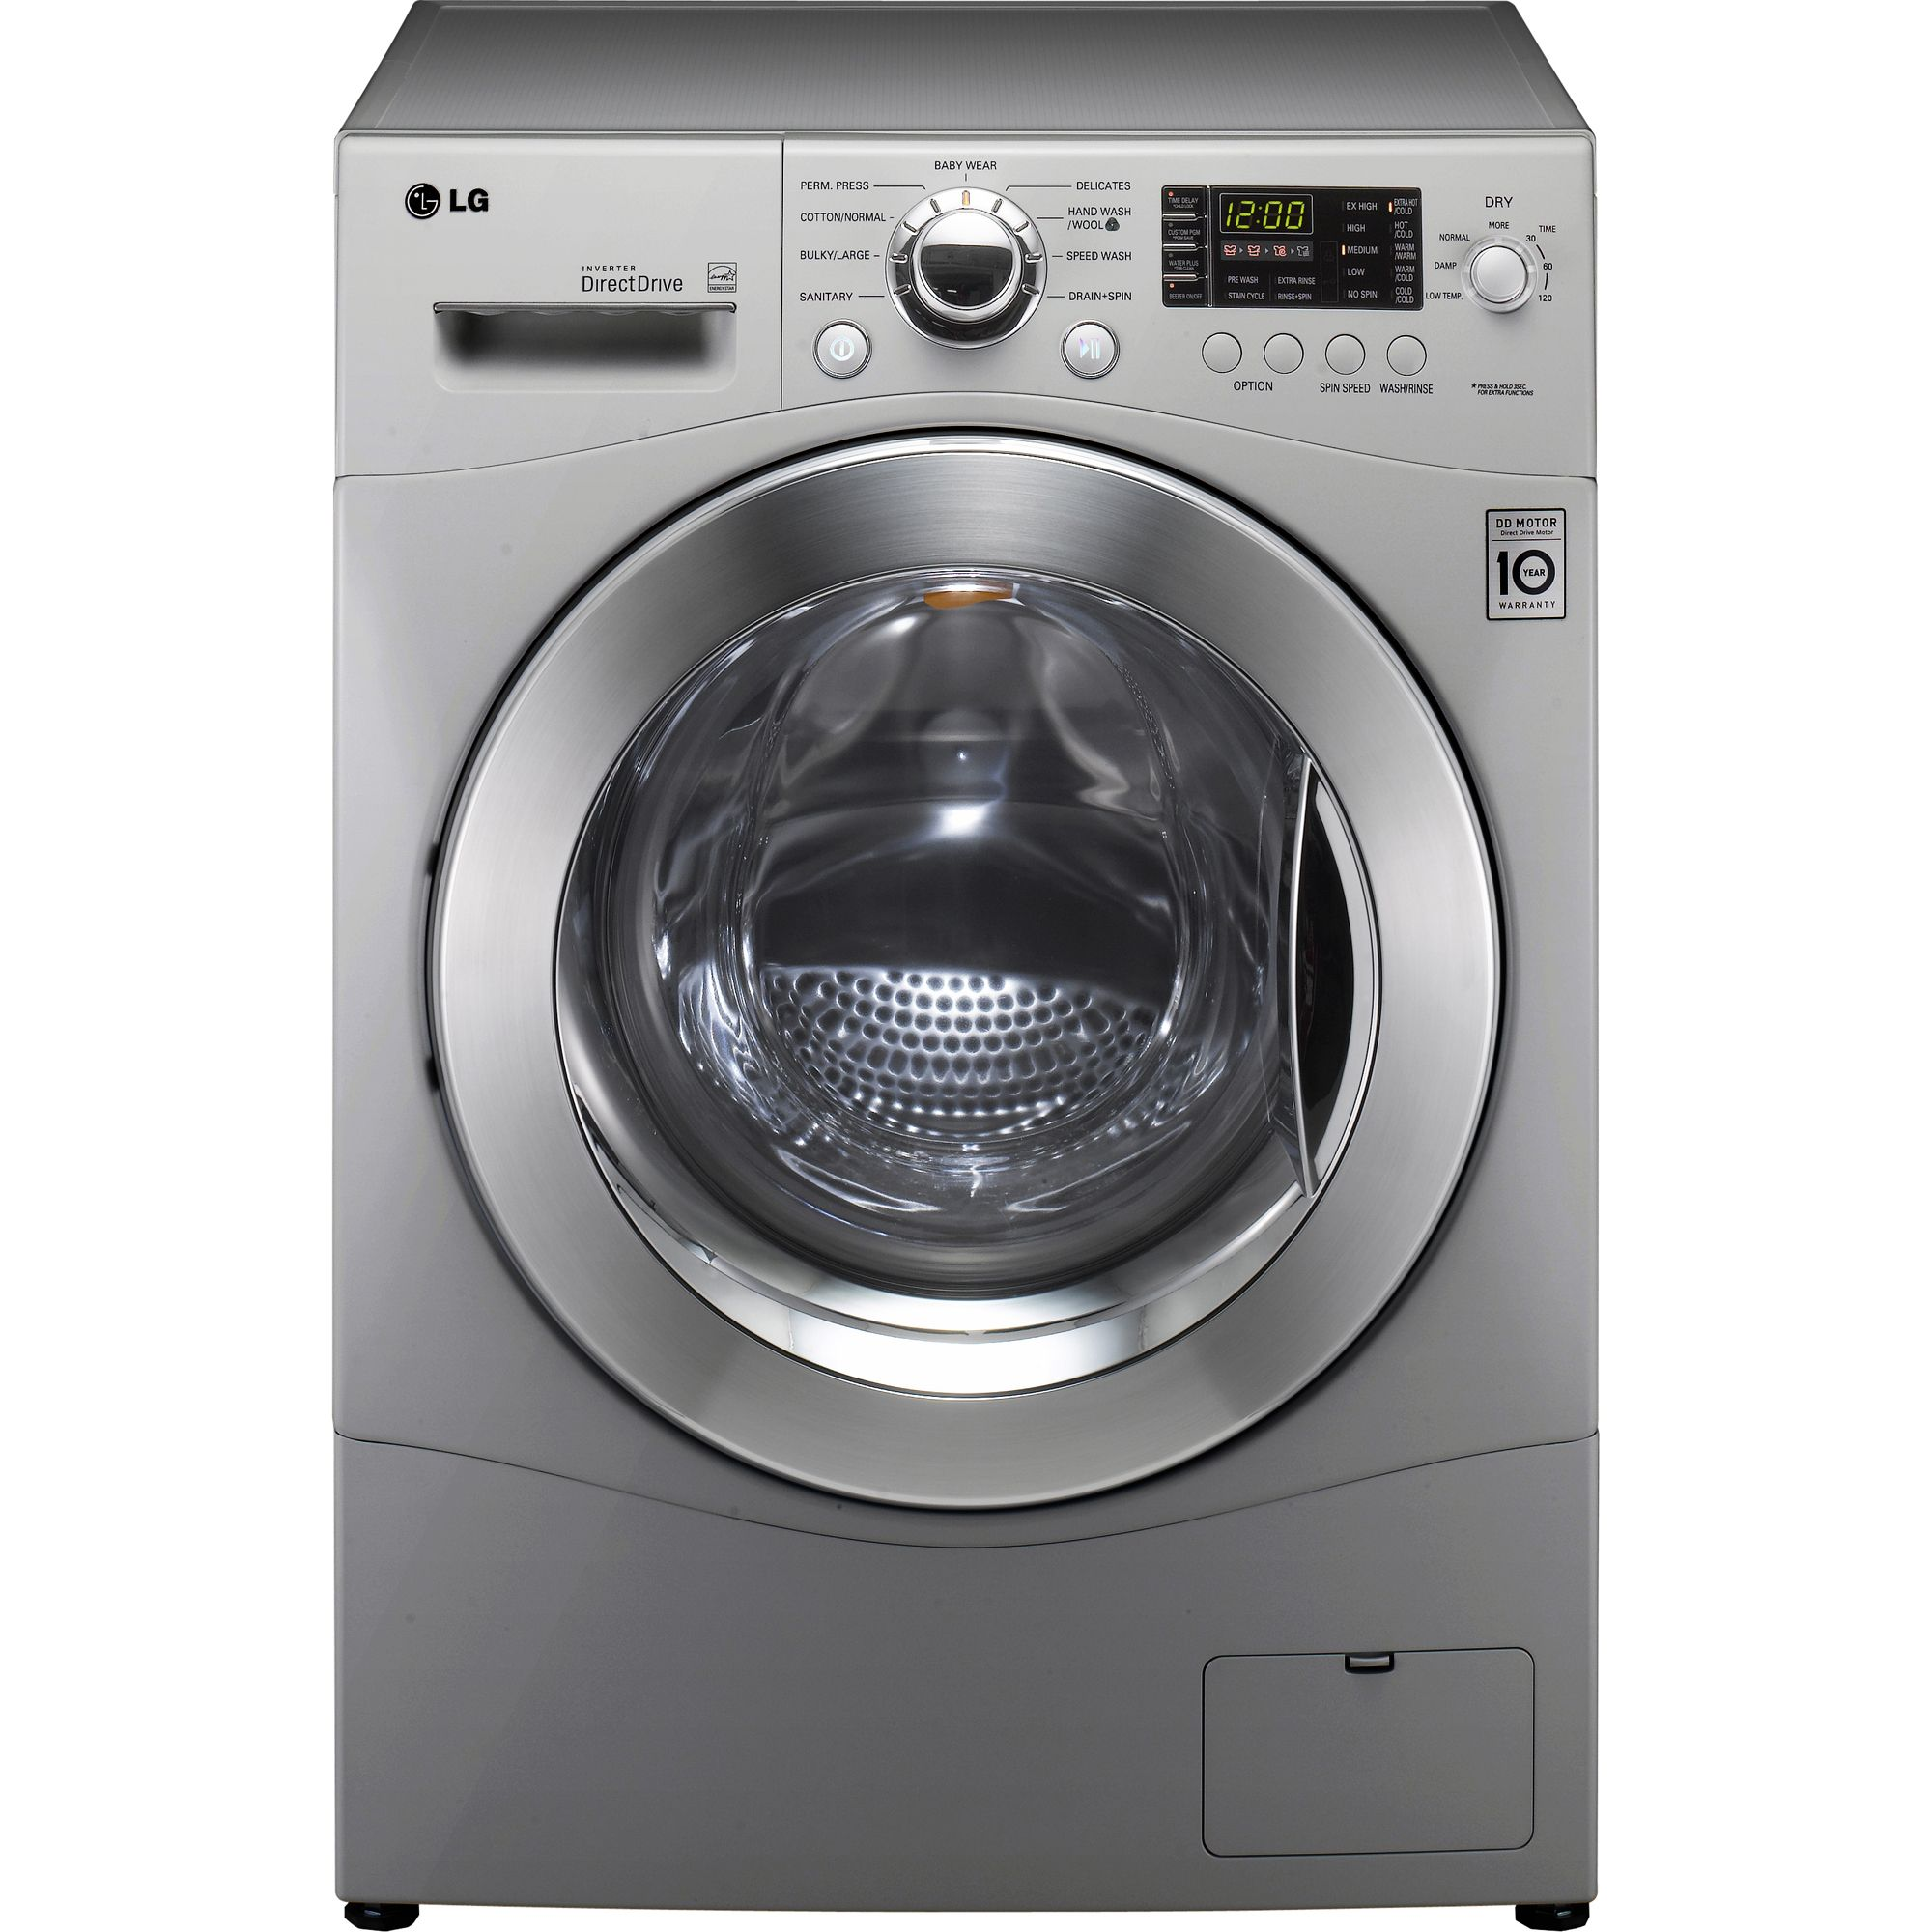 LG 2.3 cu. ft. All-in-One Washer and Dryer - Metallic